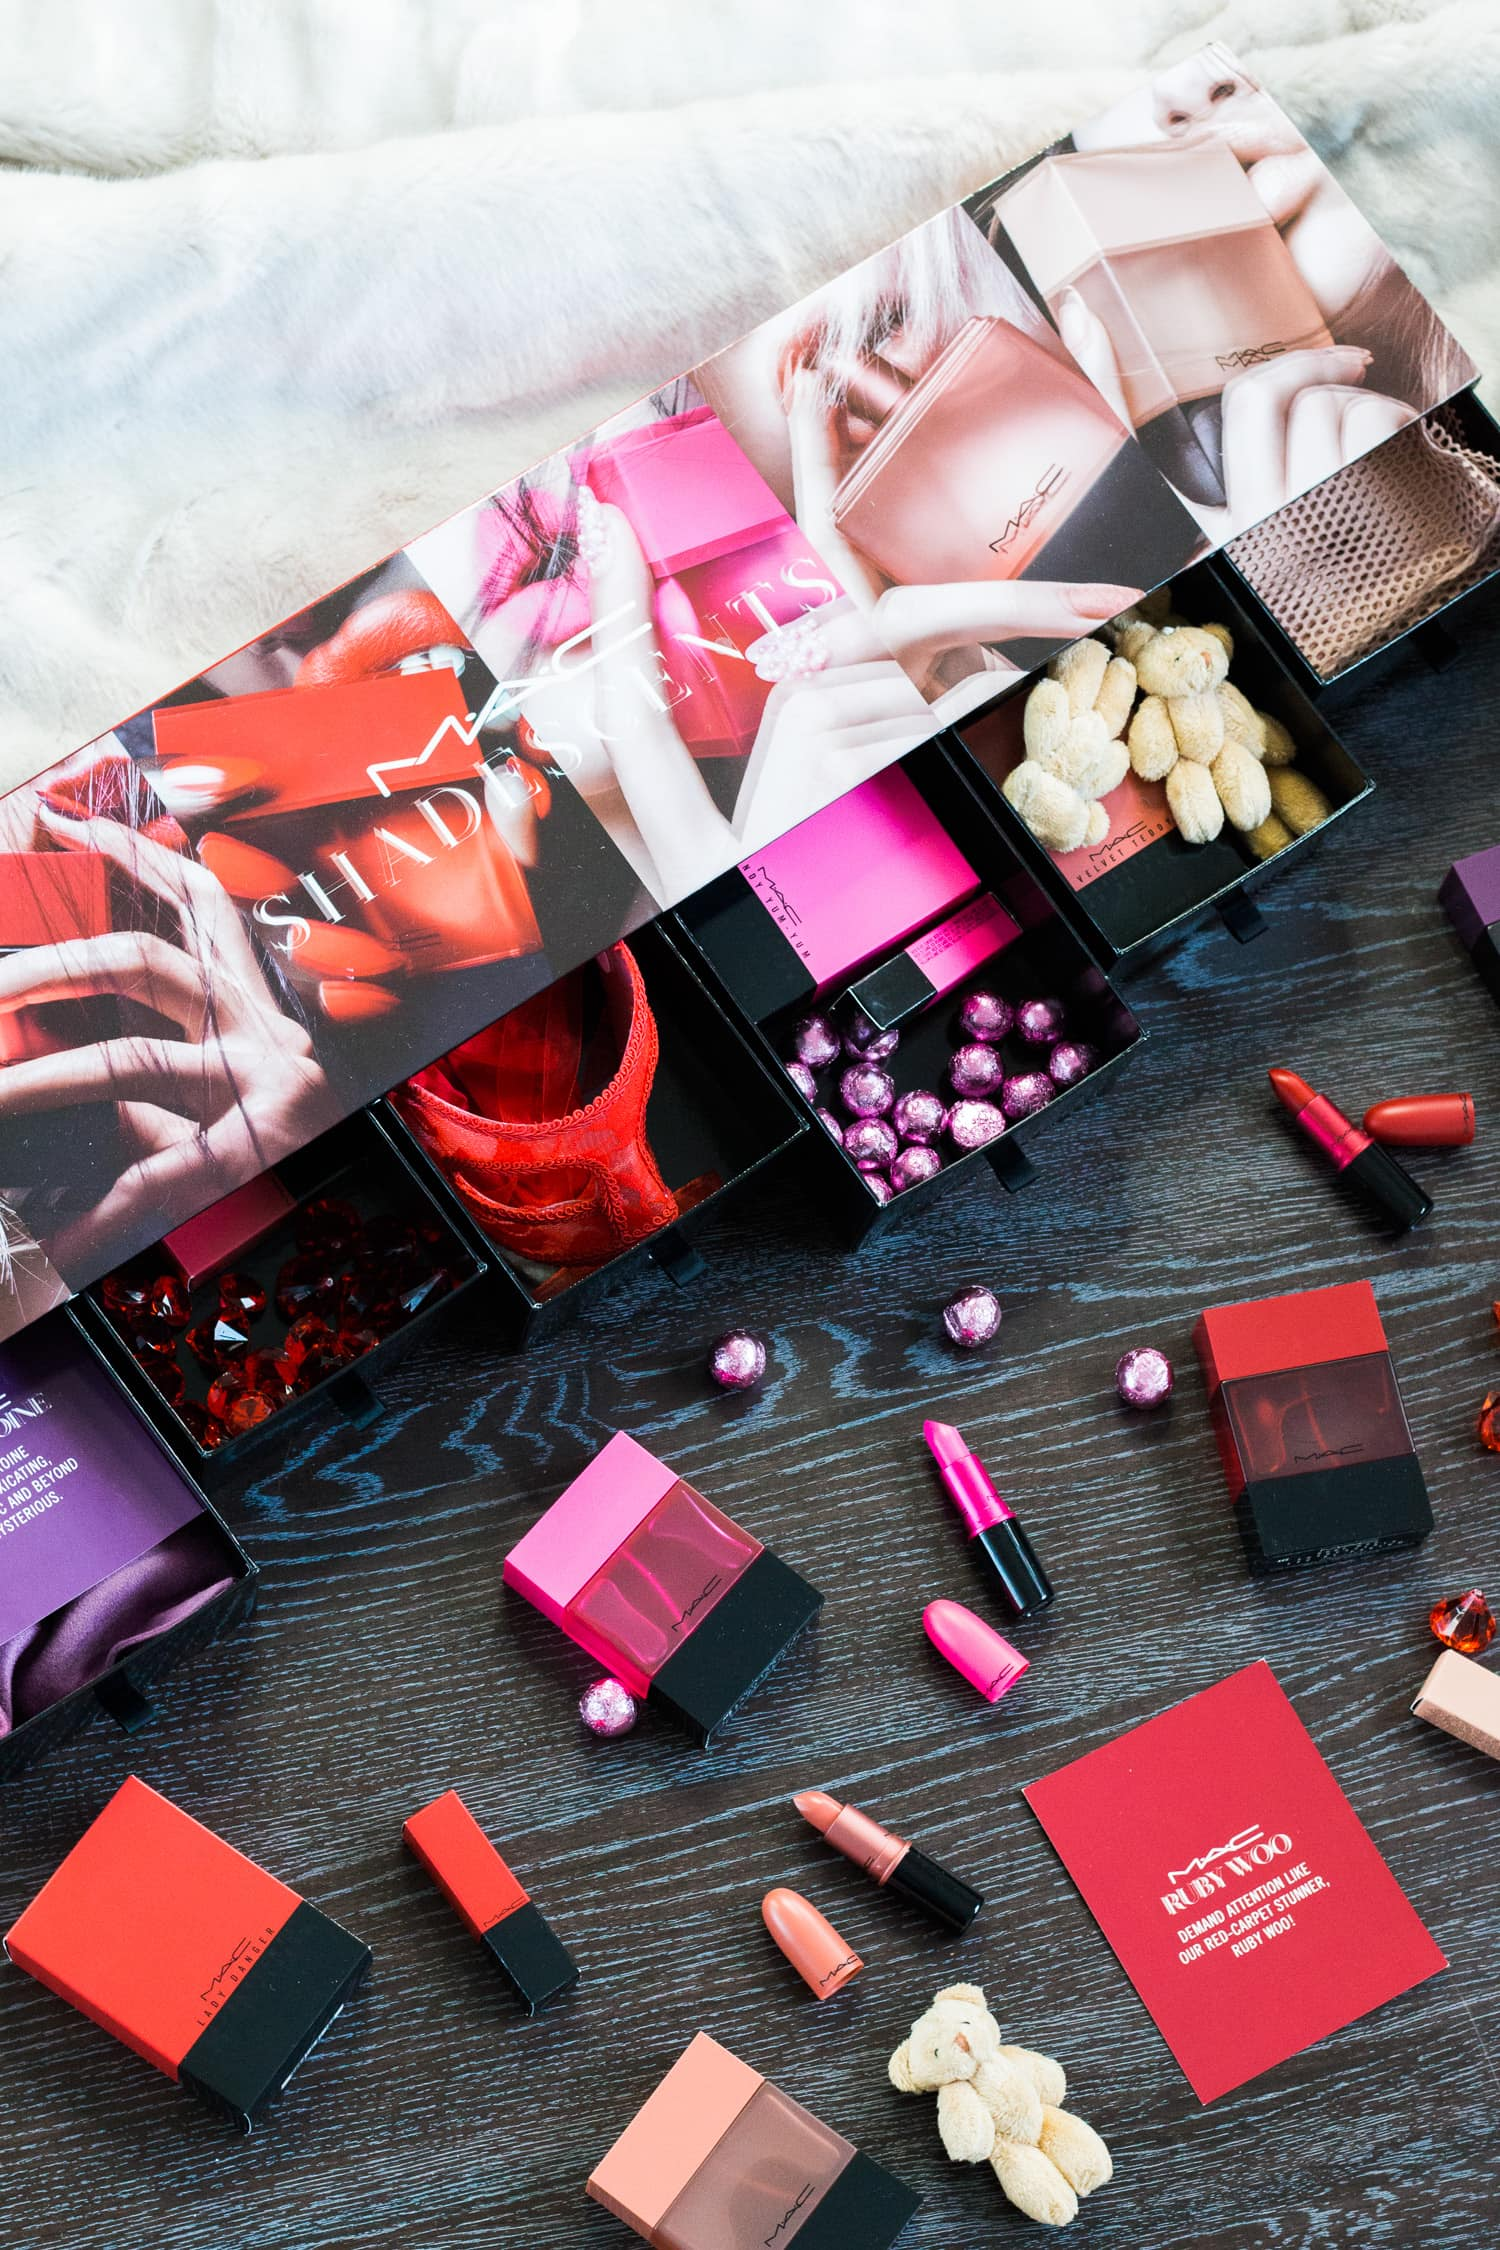 A full review of the MAC Shadescents collection featuring six of MAC's iconic lipstick shades (Ruby Woo, Candy Yum Yum, Lady Danger, Velvet Teddy, Heroine, and Creme D'Nude) and coordinating perfumes for each shade by Florida beauty blogger Ashley Brooke Nicholas.